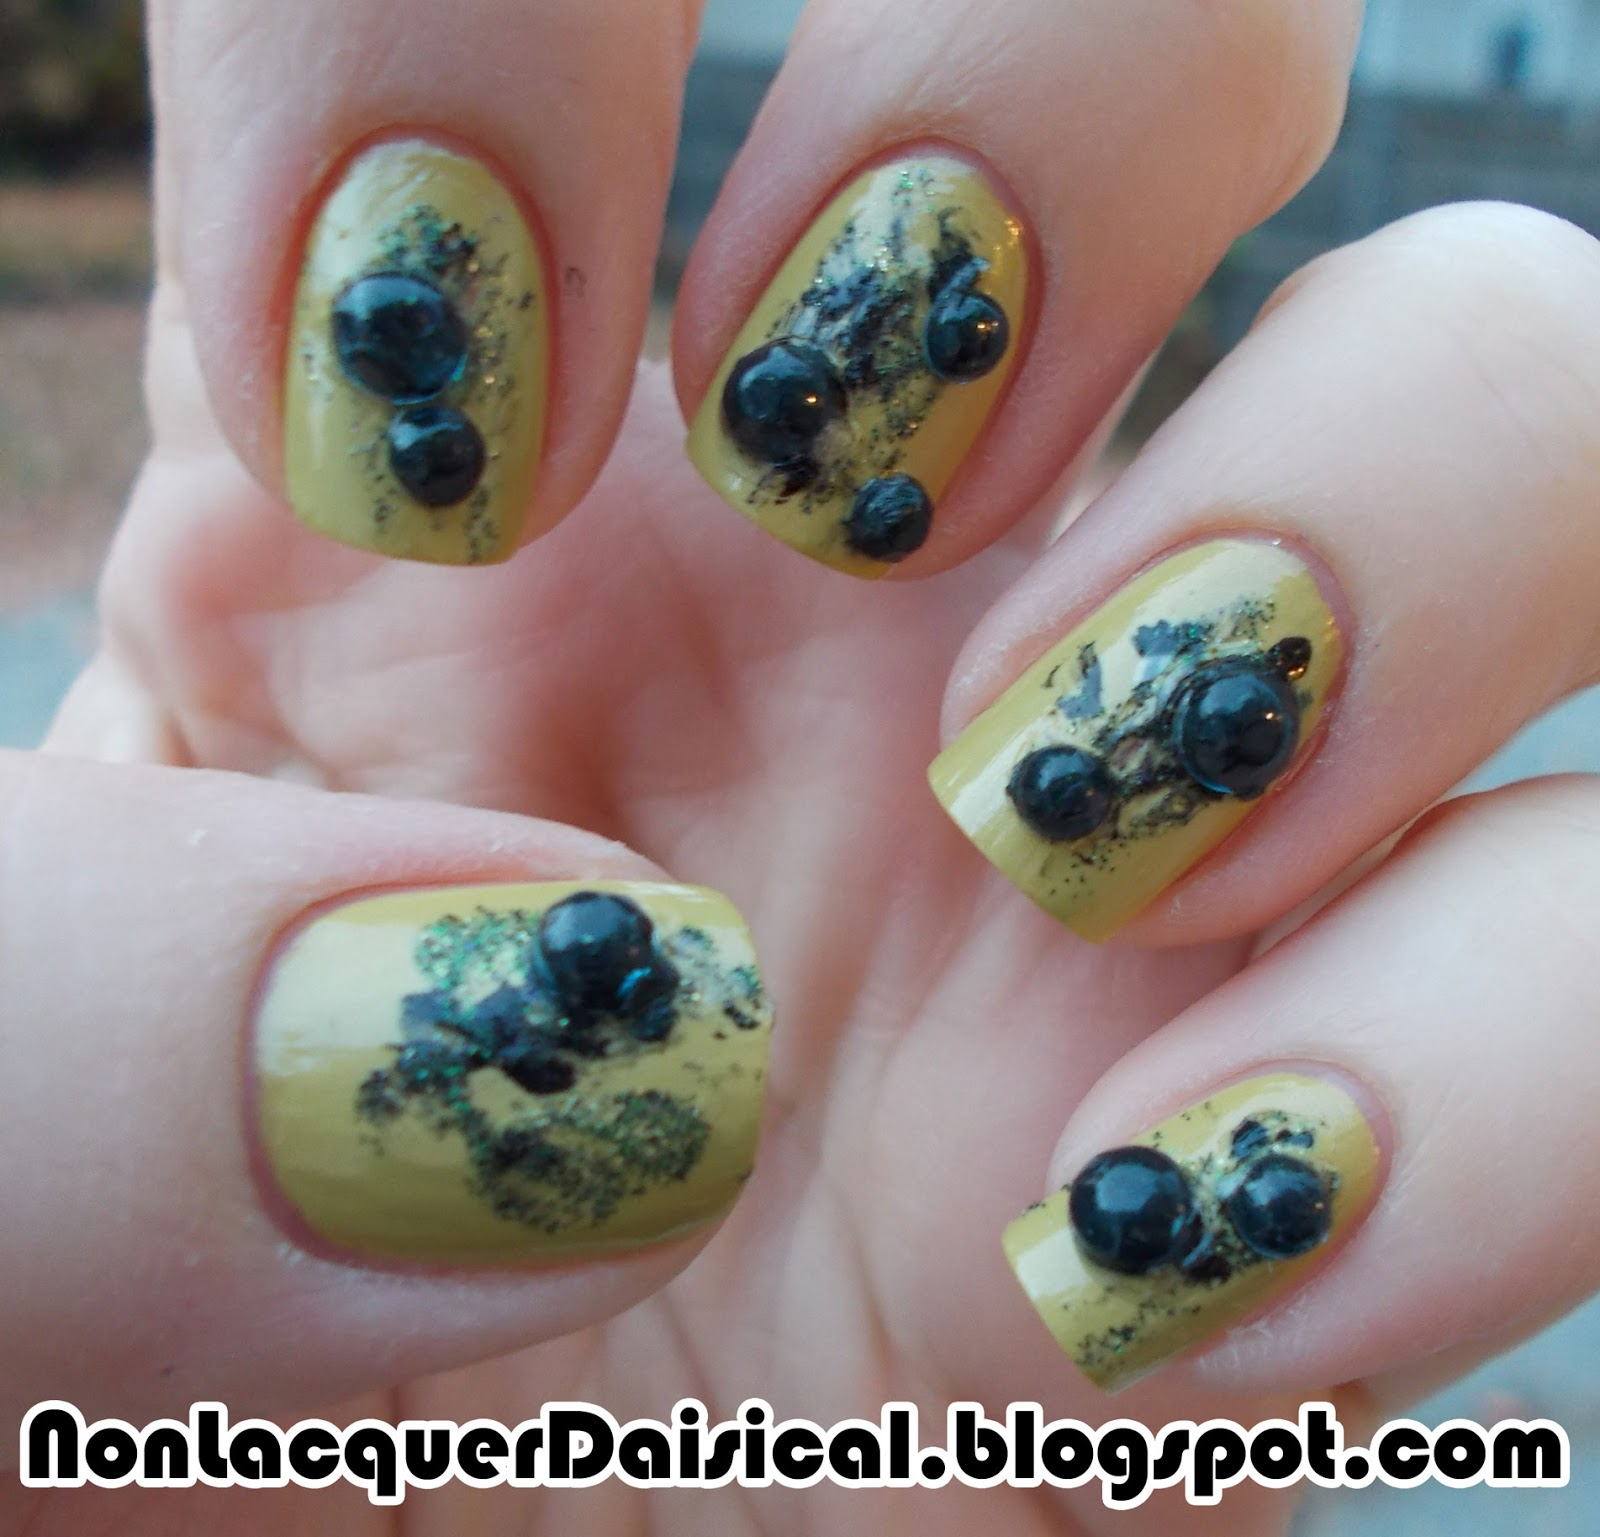 NonLacquerDaisical: Witches-This Is Halloween Challenge